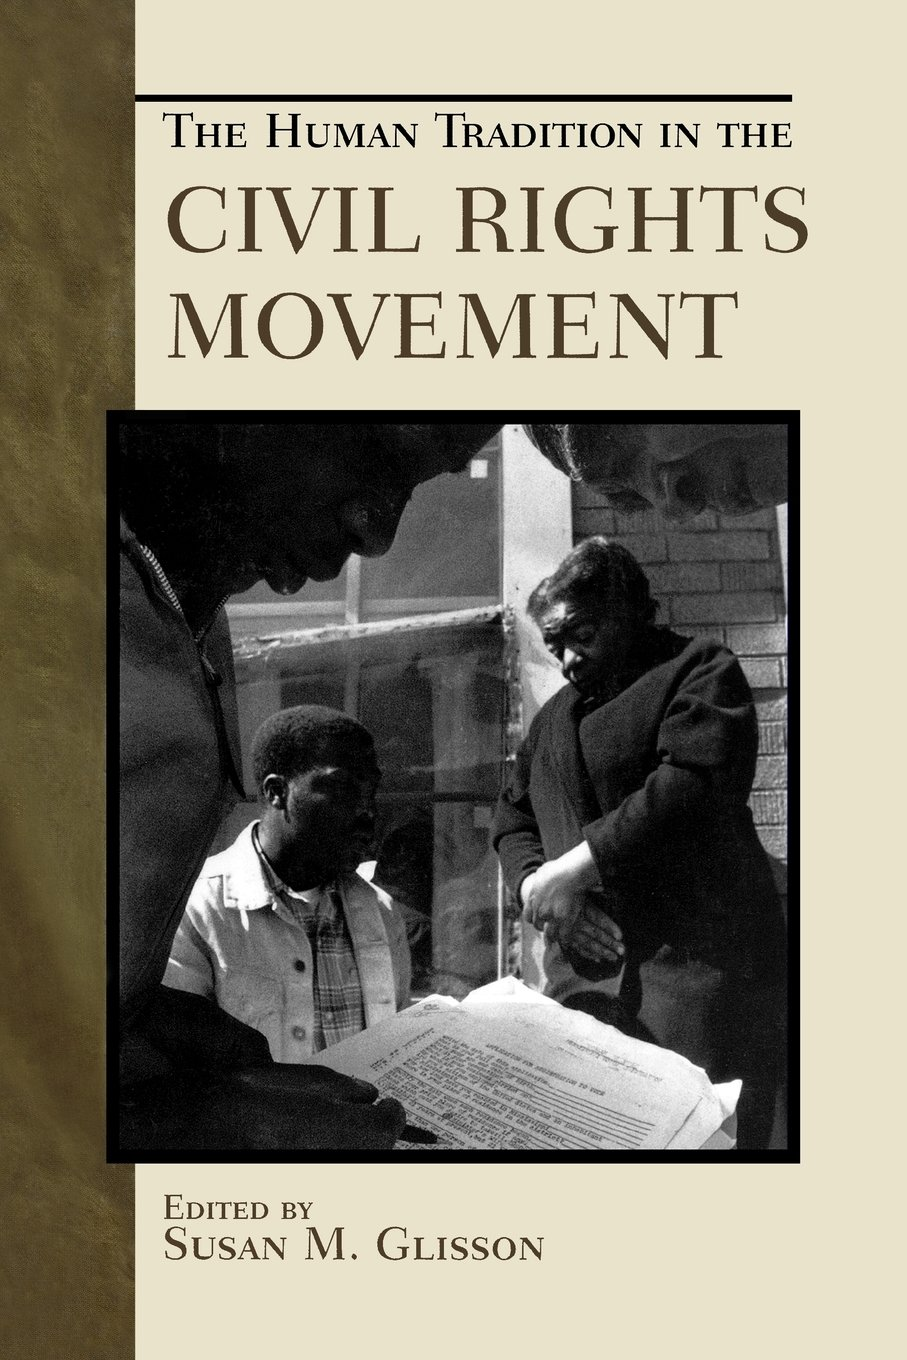 Read more about the protests in Gainesville and elsewhere in this book of essays edited by Susan Gilson.